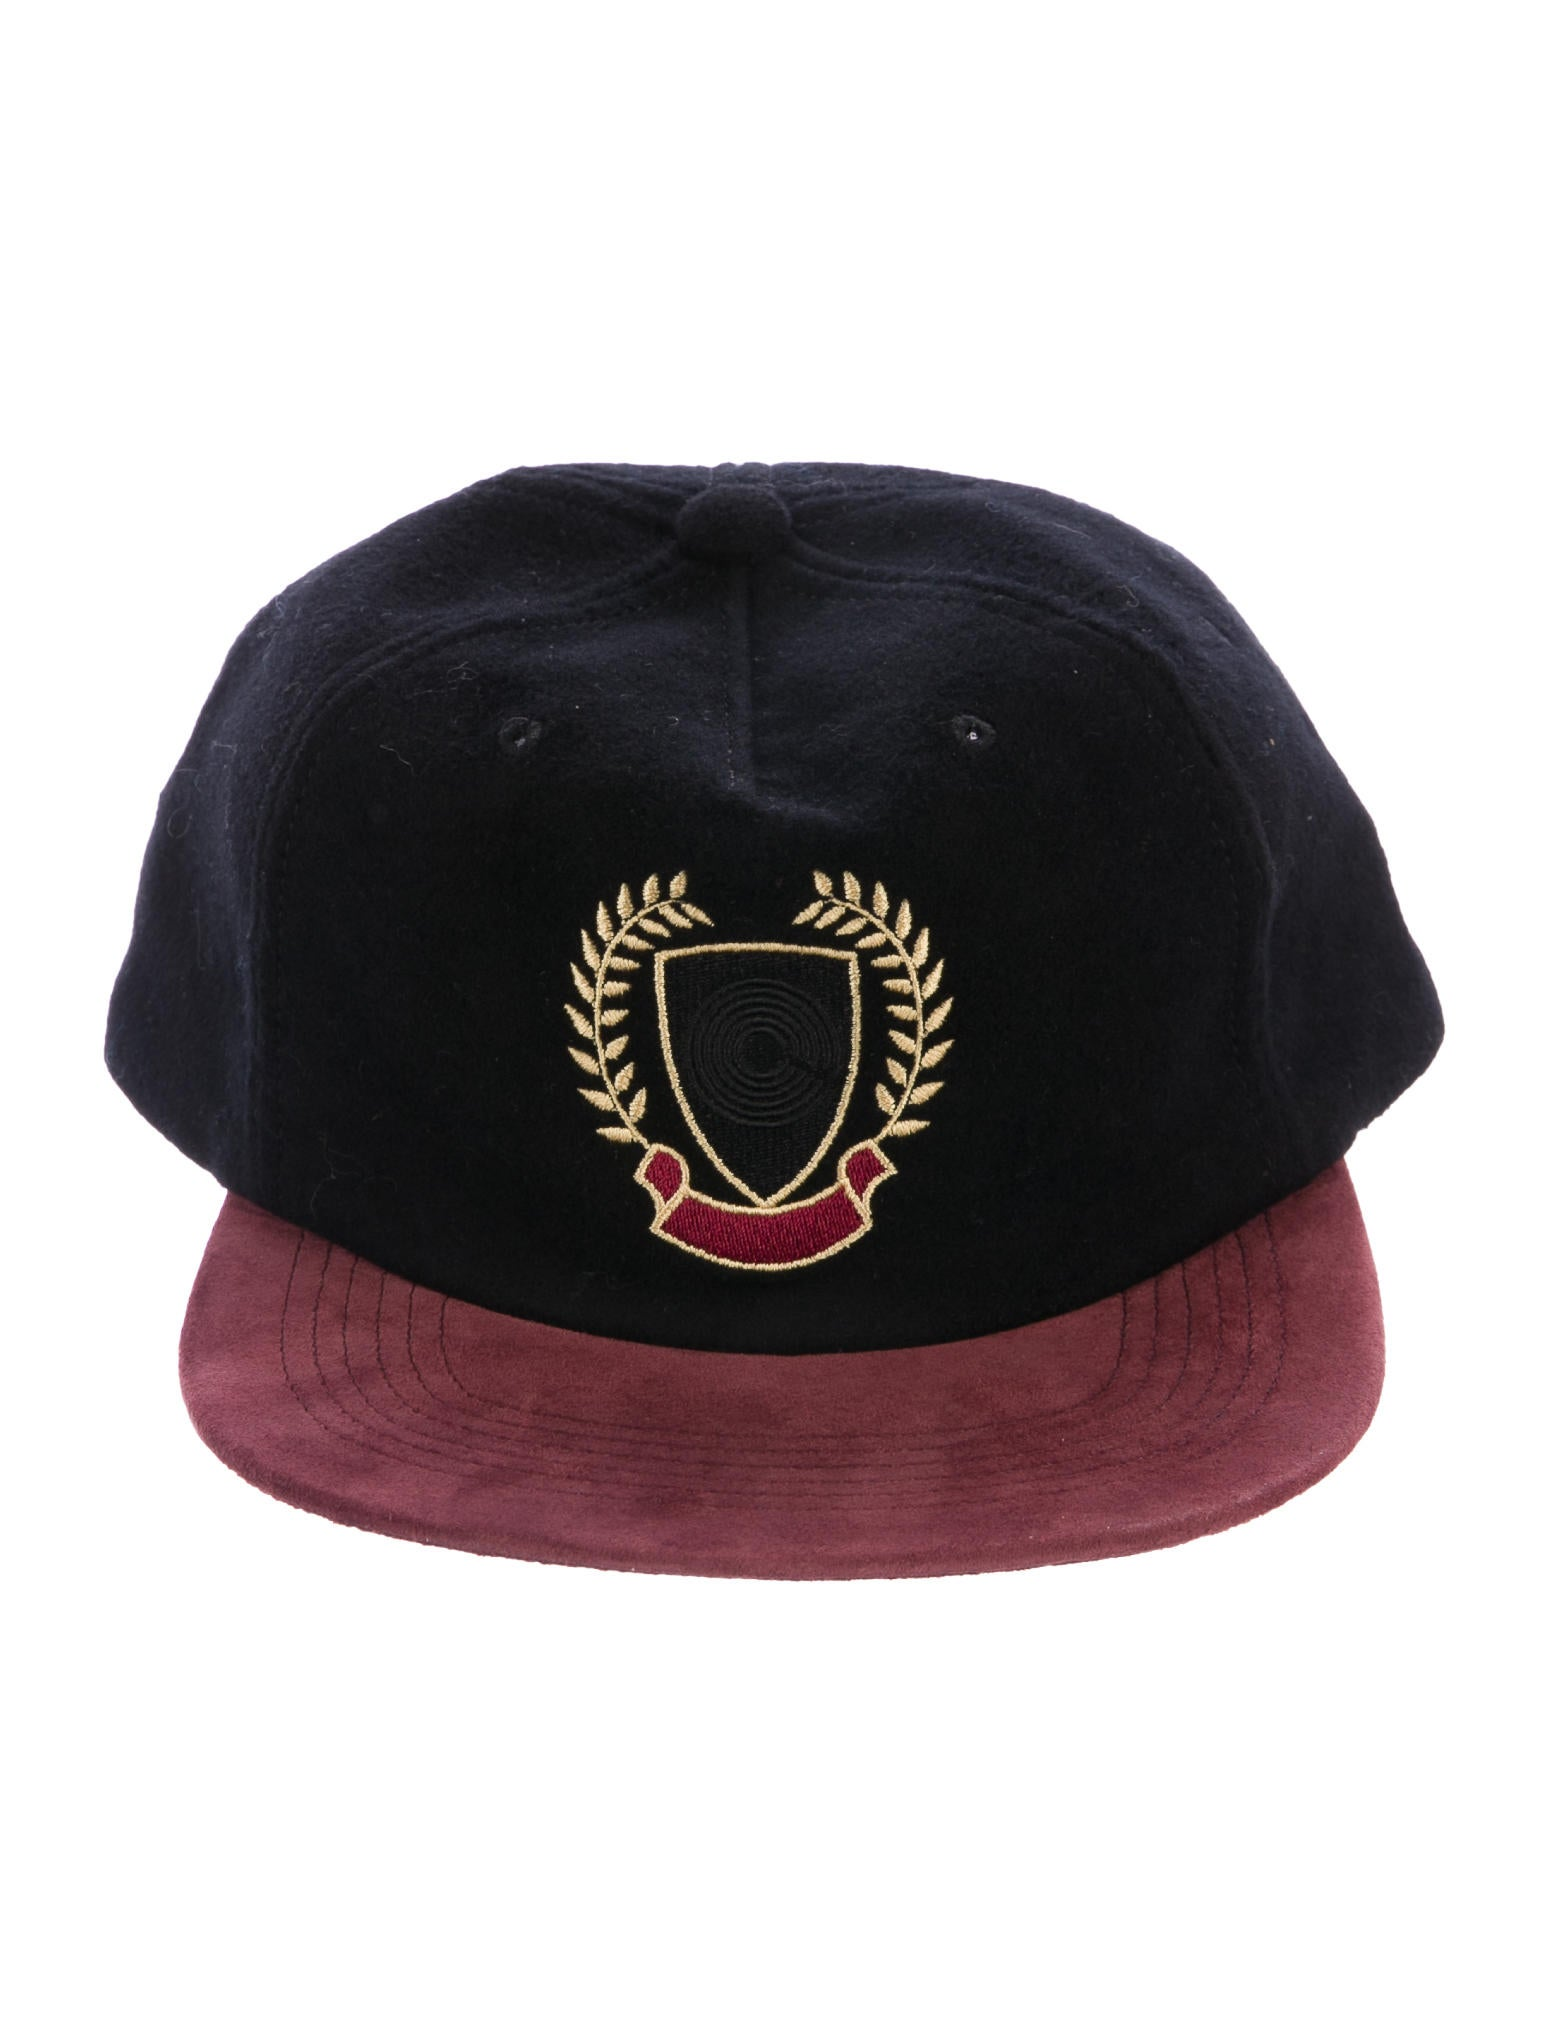 Yeezy suede trimmed embroidered hat accessories